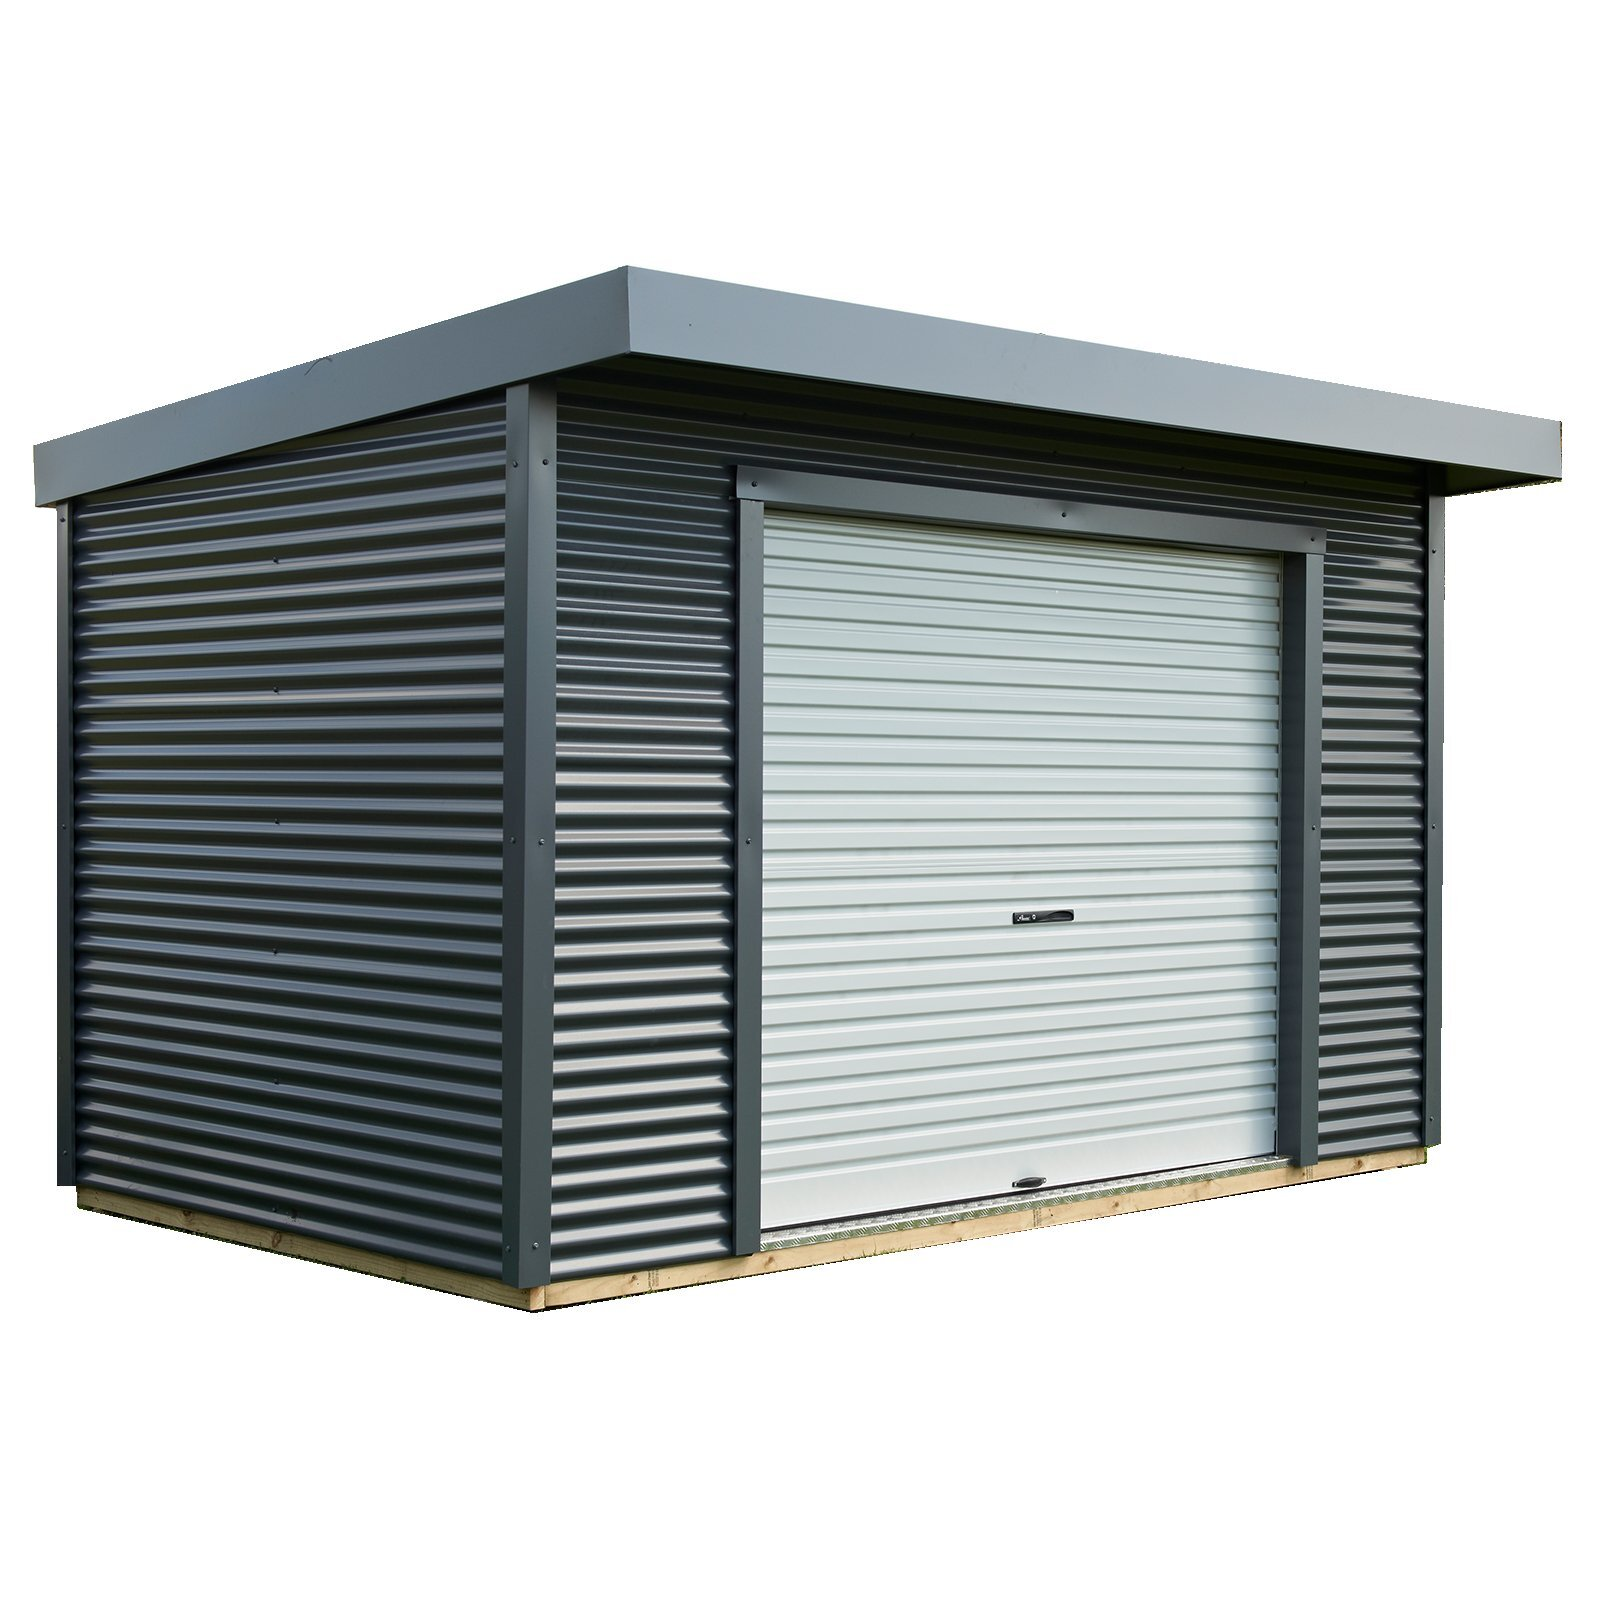 Duratuf 3.9 x 2.55m Lifestyle Kaipara Pre Painted Steel Shed